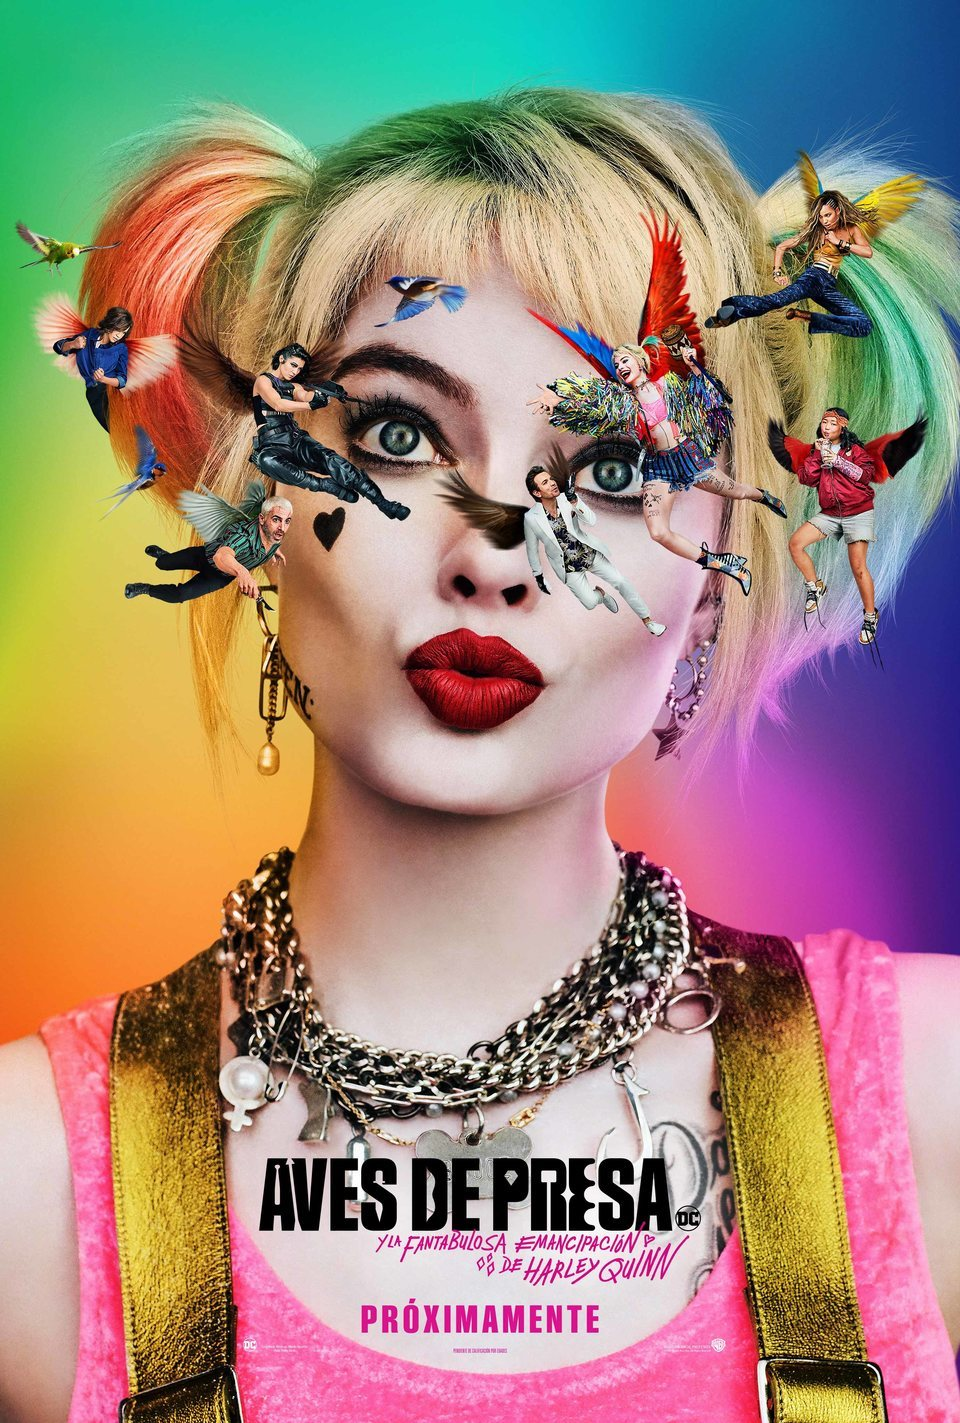 Teaser Poster España poster for Birds of Prey: and the Fantabulous emancipation of one Harley Quinn